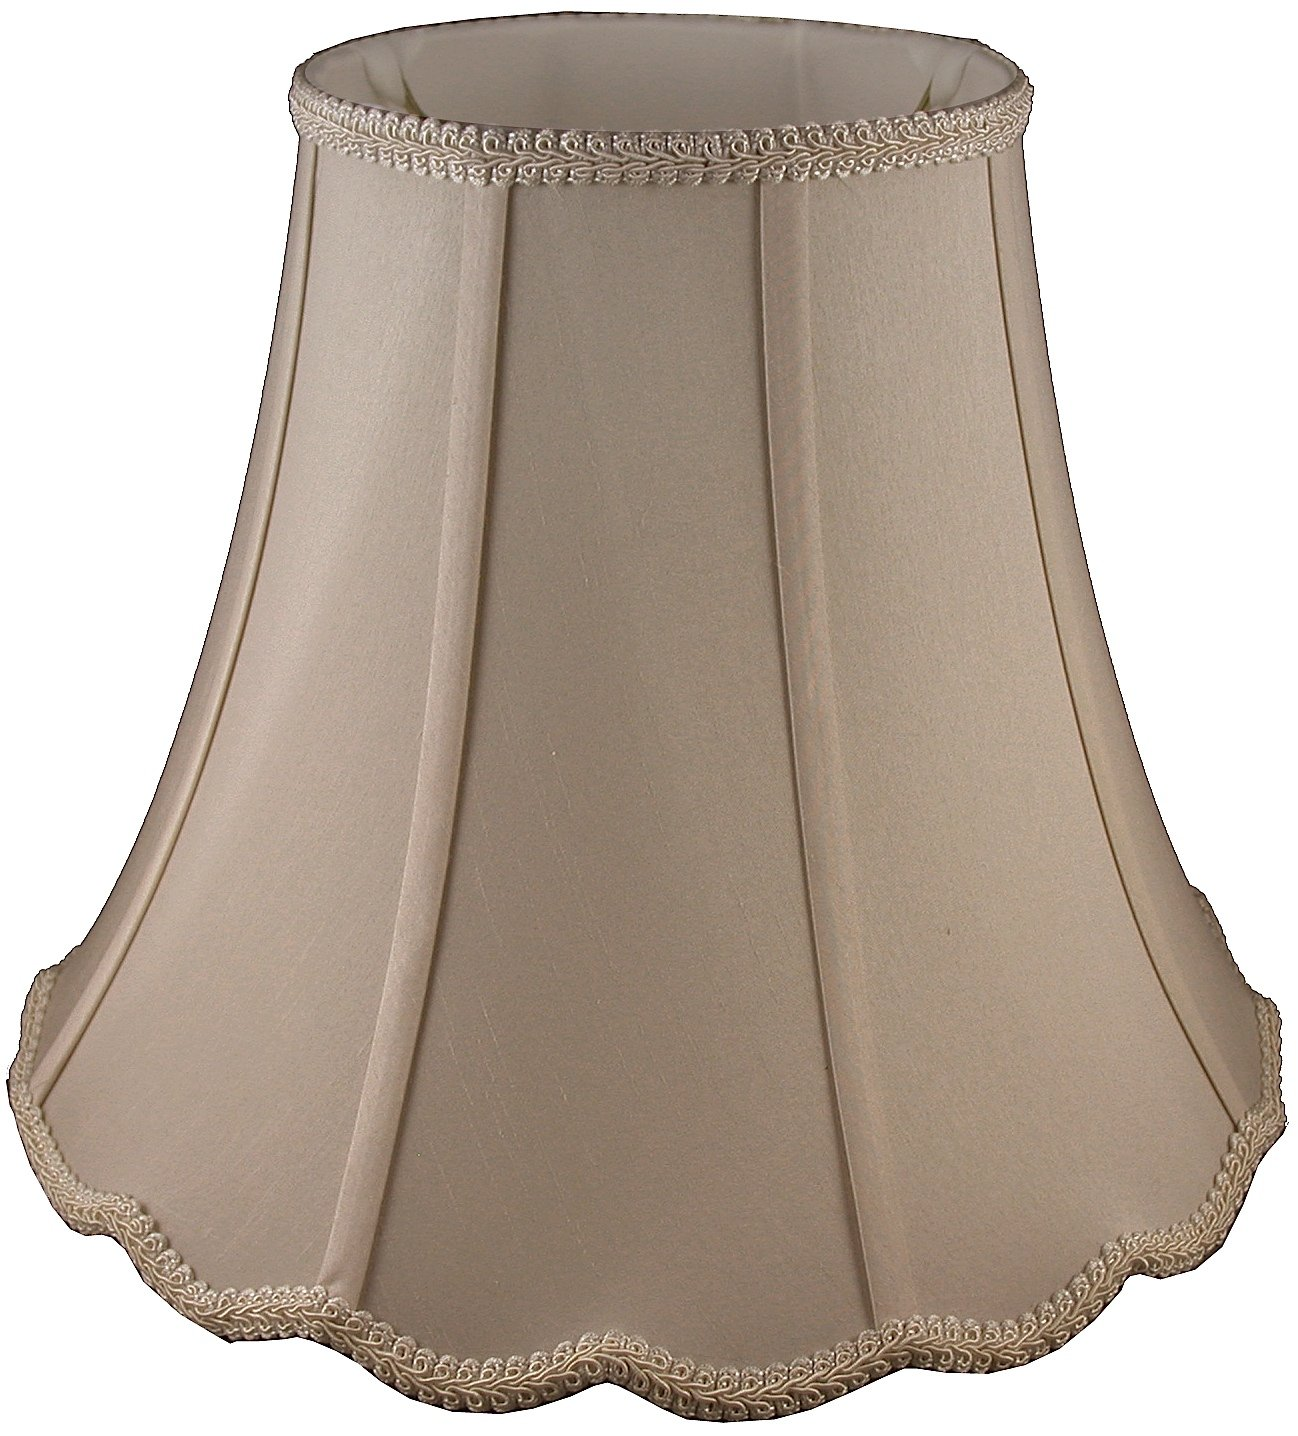 American Pride 10''x 20''x 15'' Scallop Soft Shantung Tailored Lampshade, Croissant